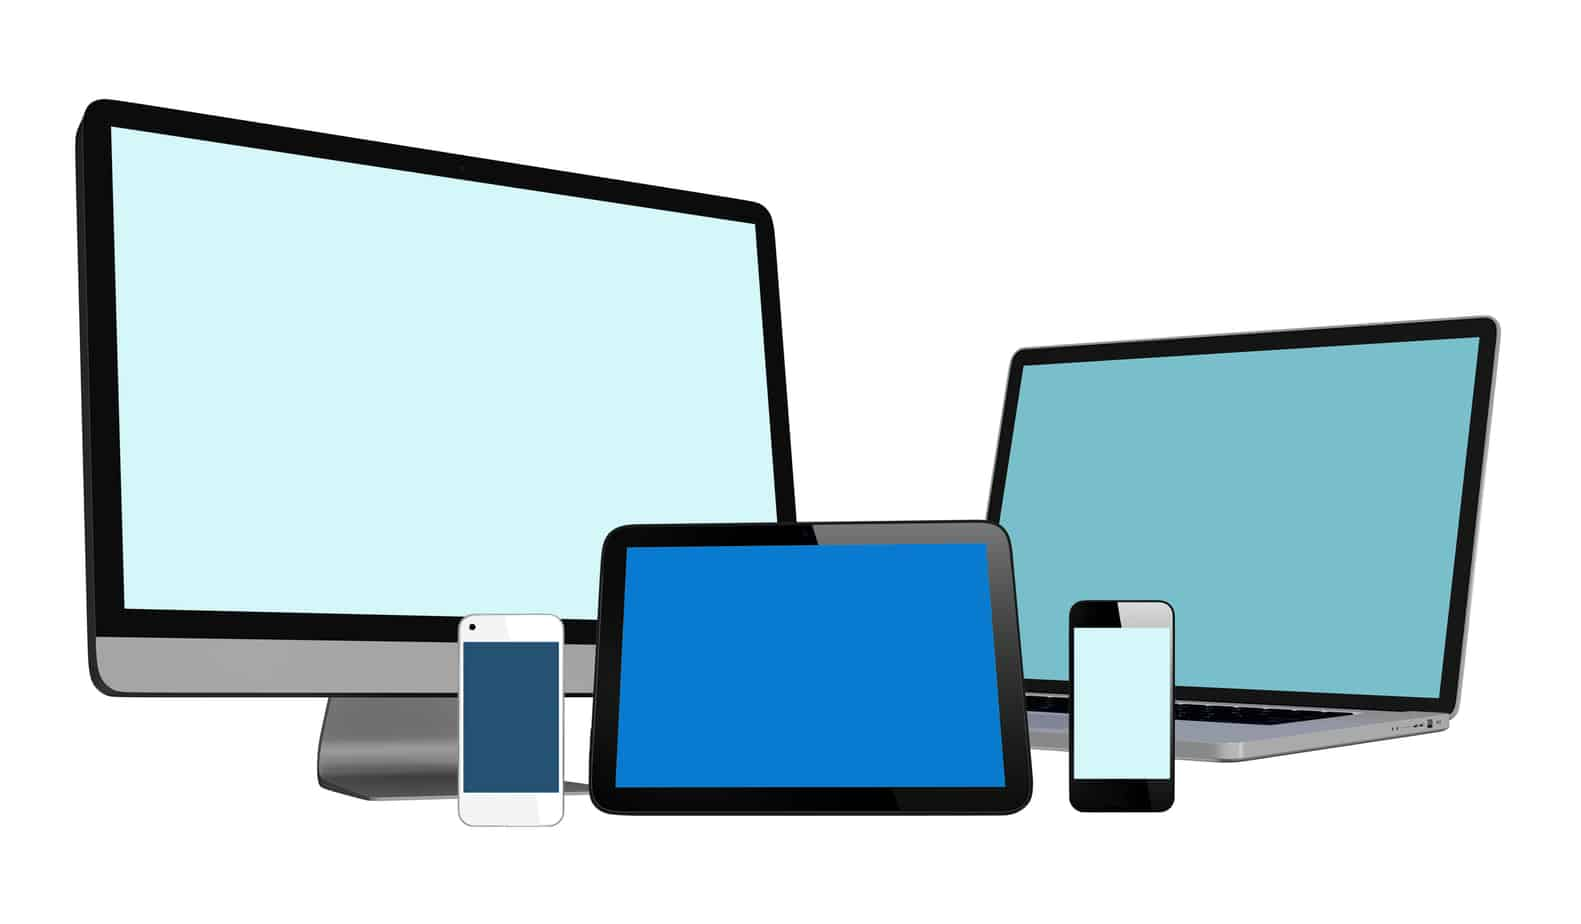 image of computers and laptop